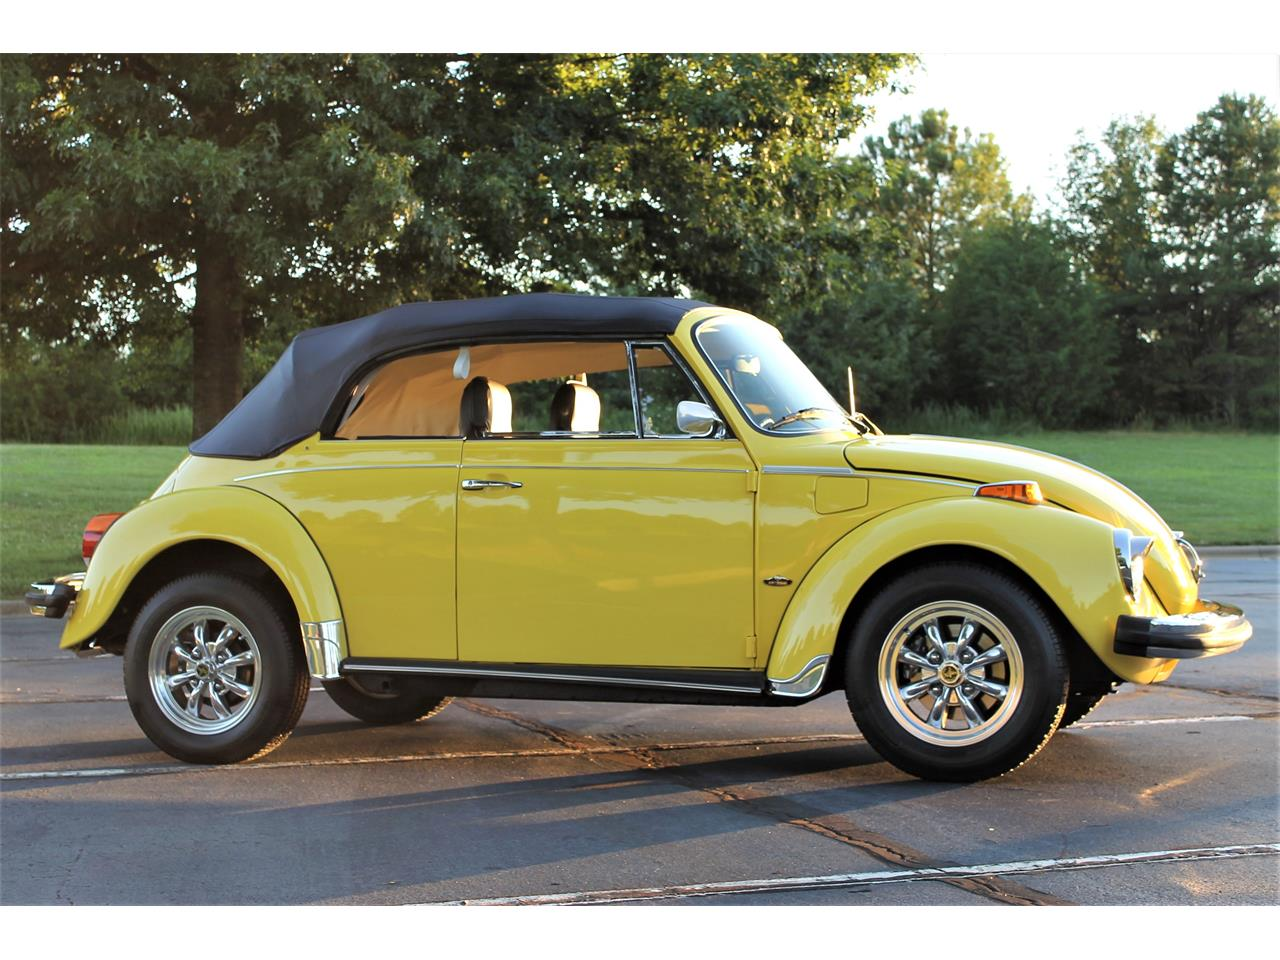 Large Picture of 1975 Volkswagen Beetle located in South Carolina - $15,900.00 Offered by a Private Seller - M5P1